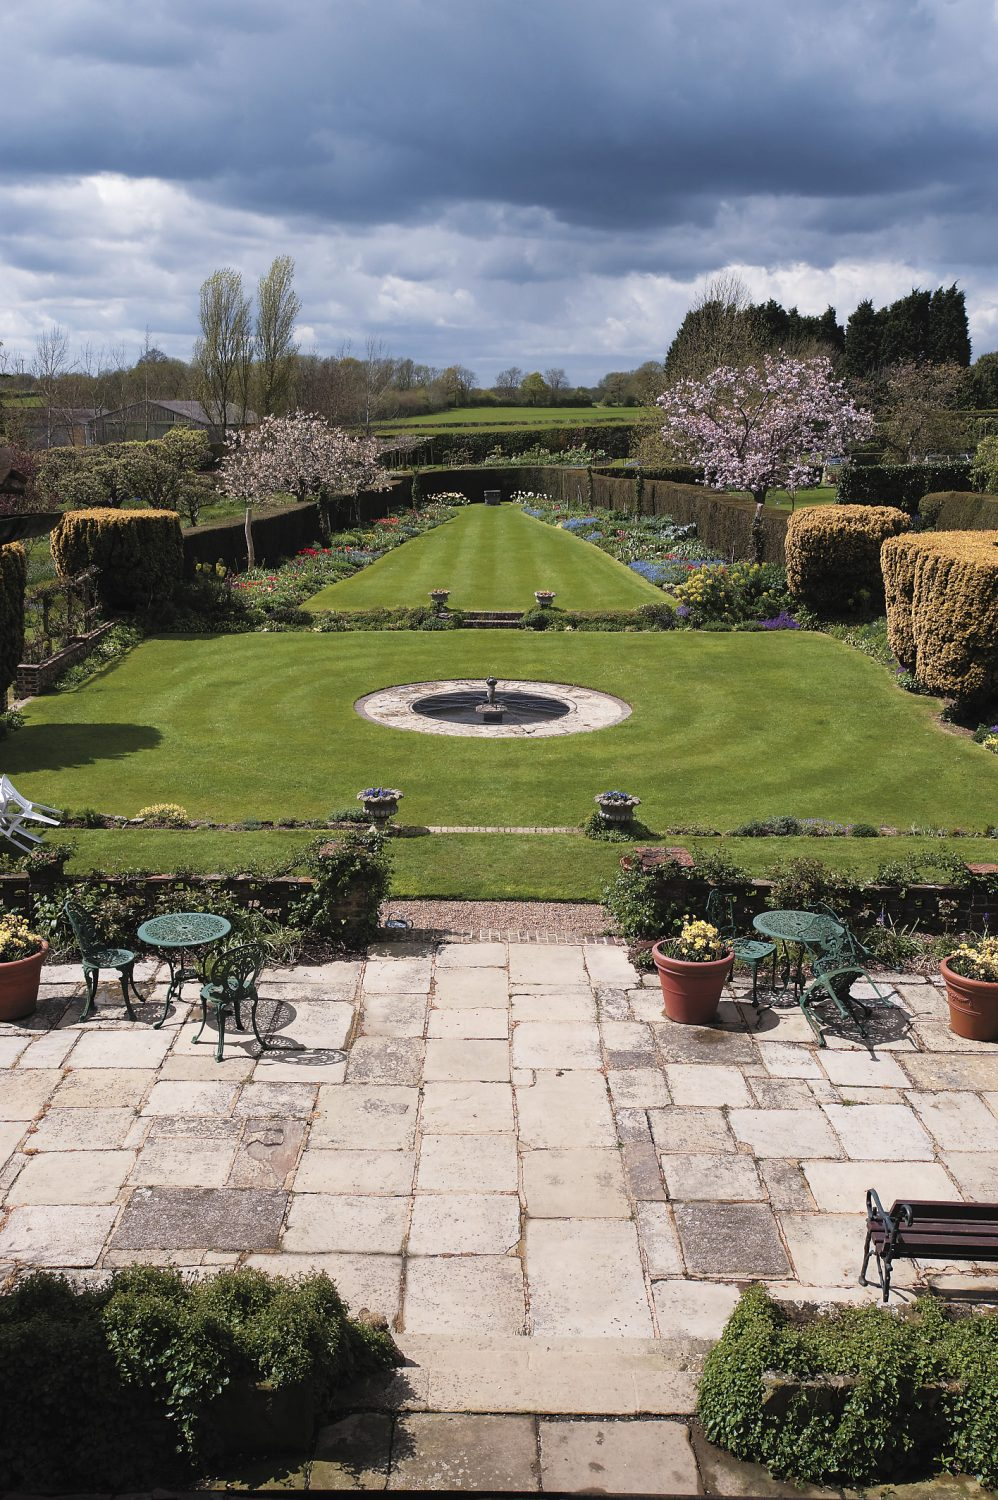 the view of the formal lawn